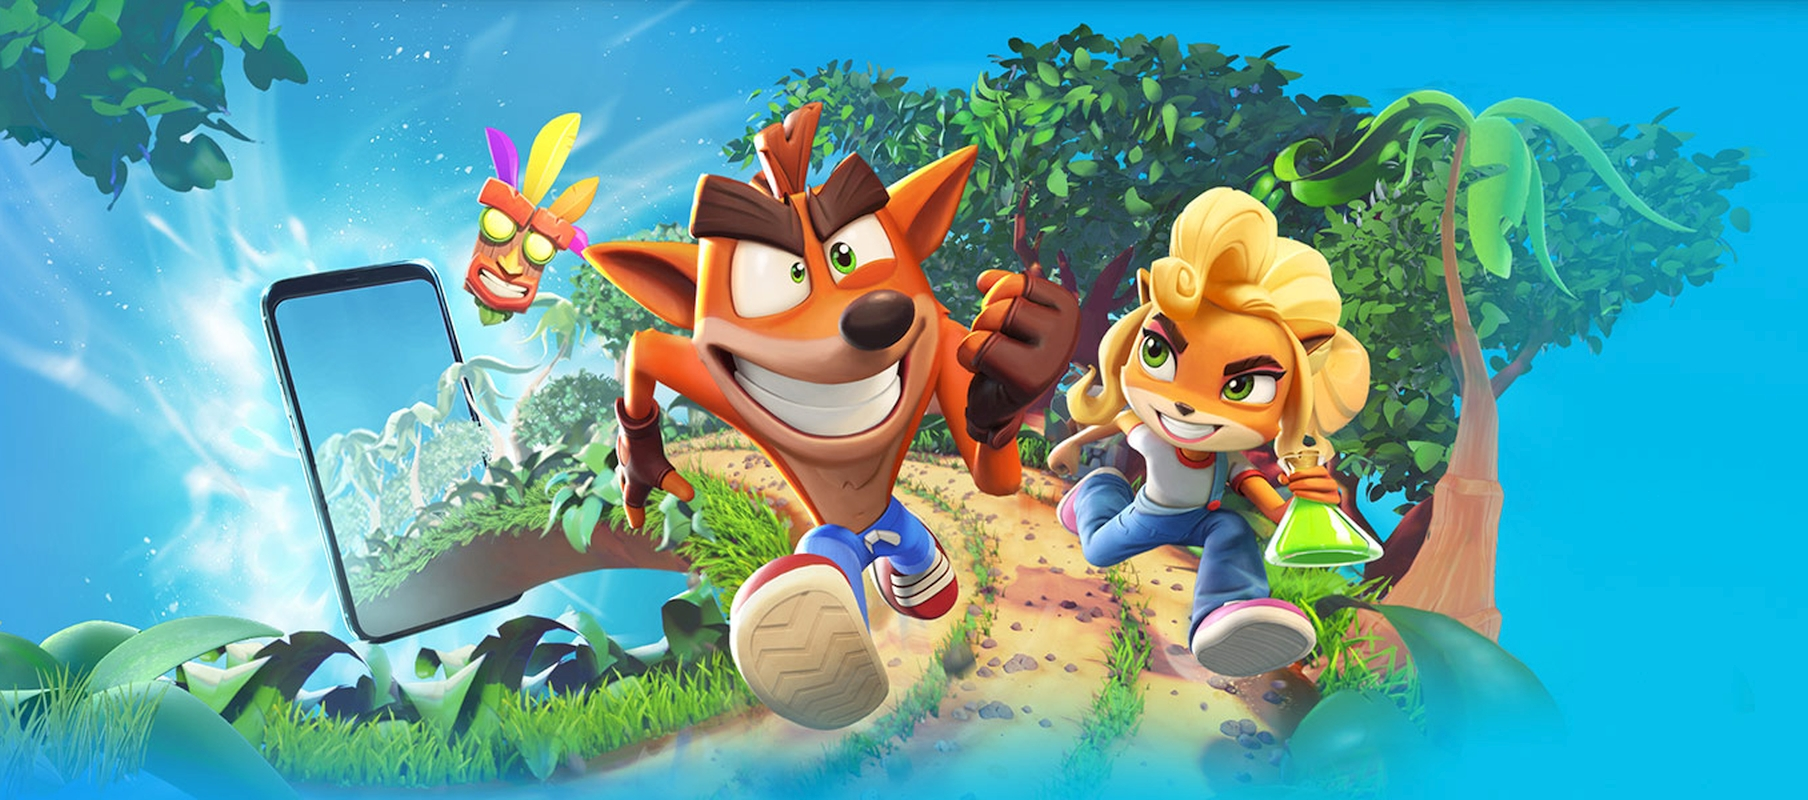 Crash Bandicoot: On the Run Pre-Registration Now Available On App Store